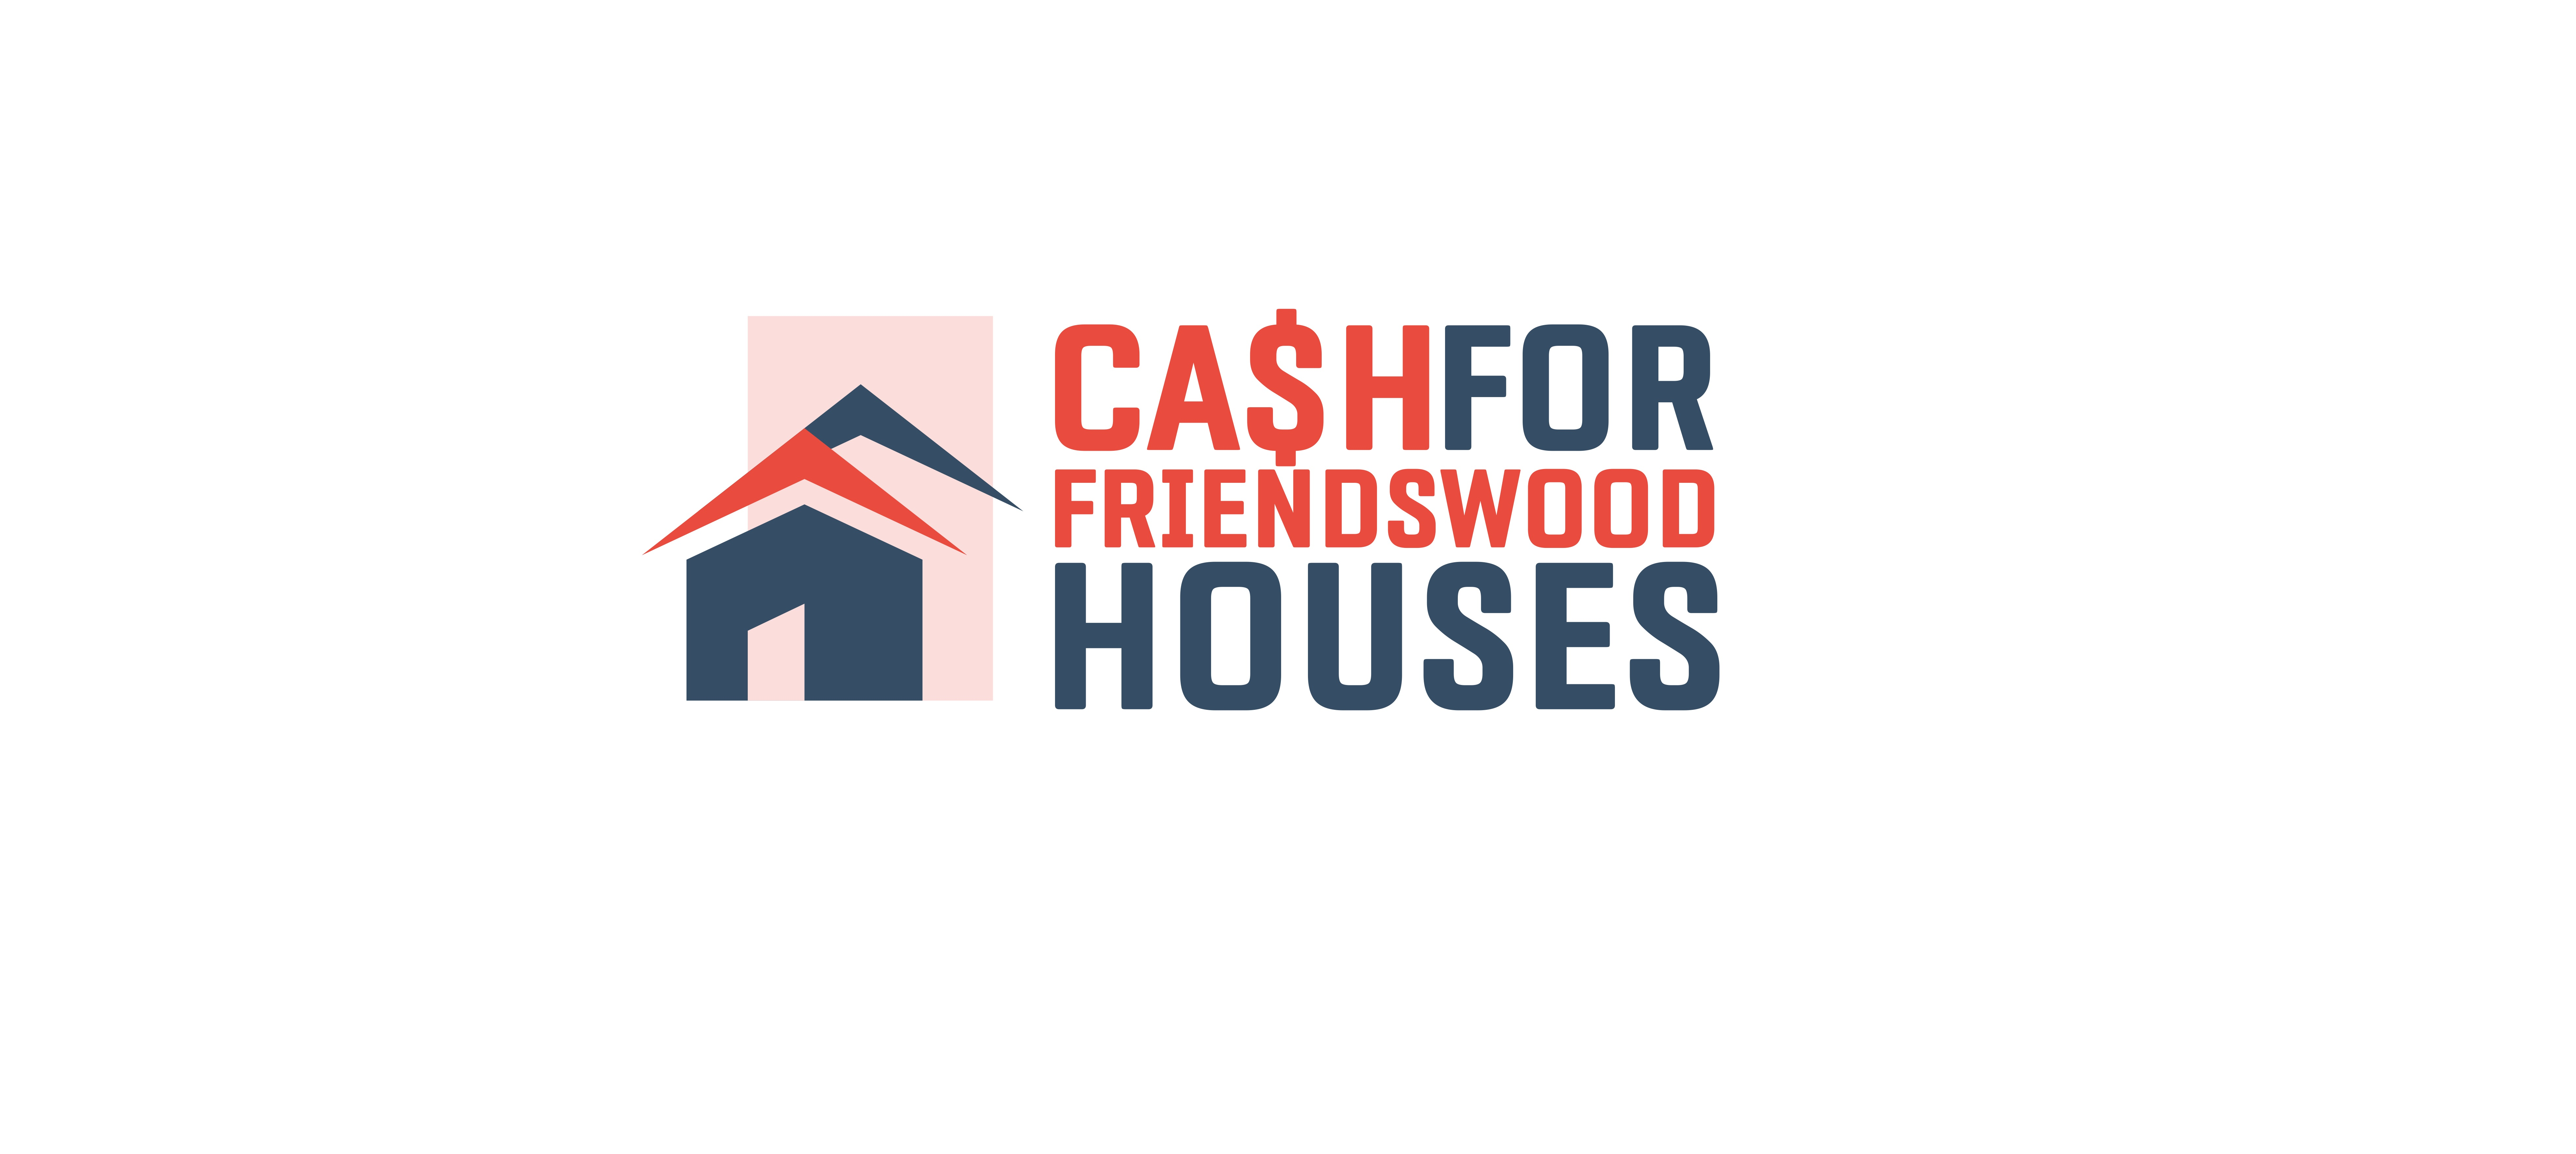 Cash for Friendswood Houses's Logo